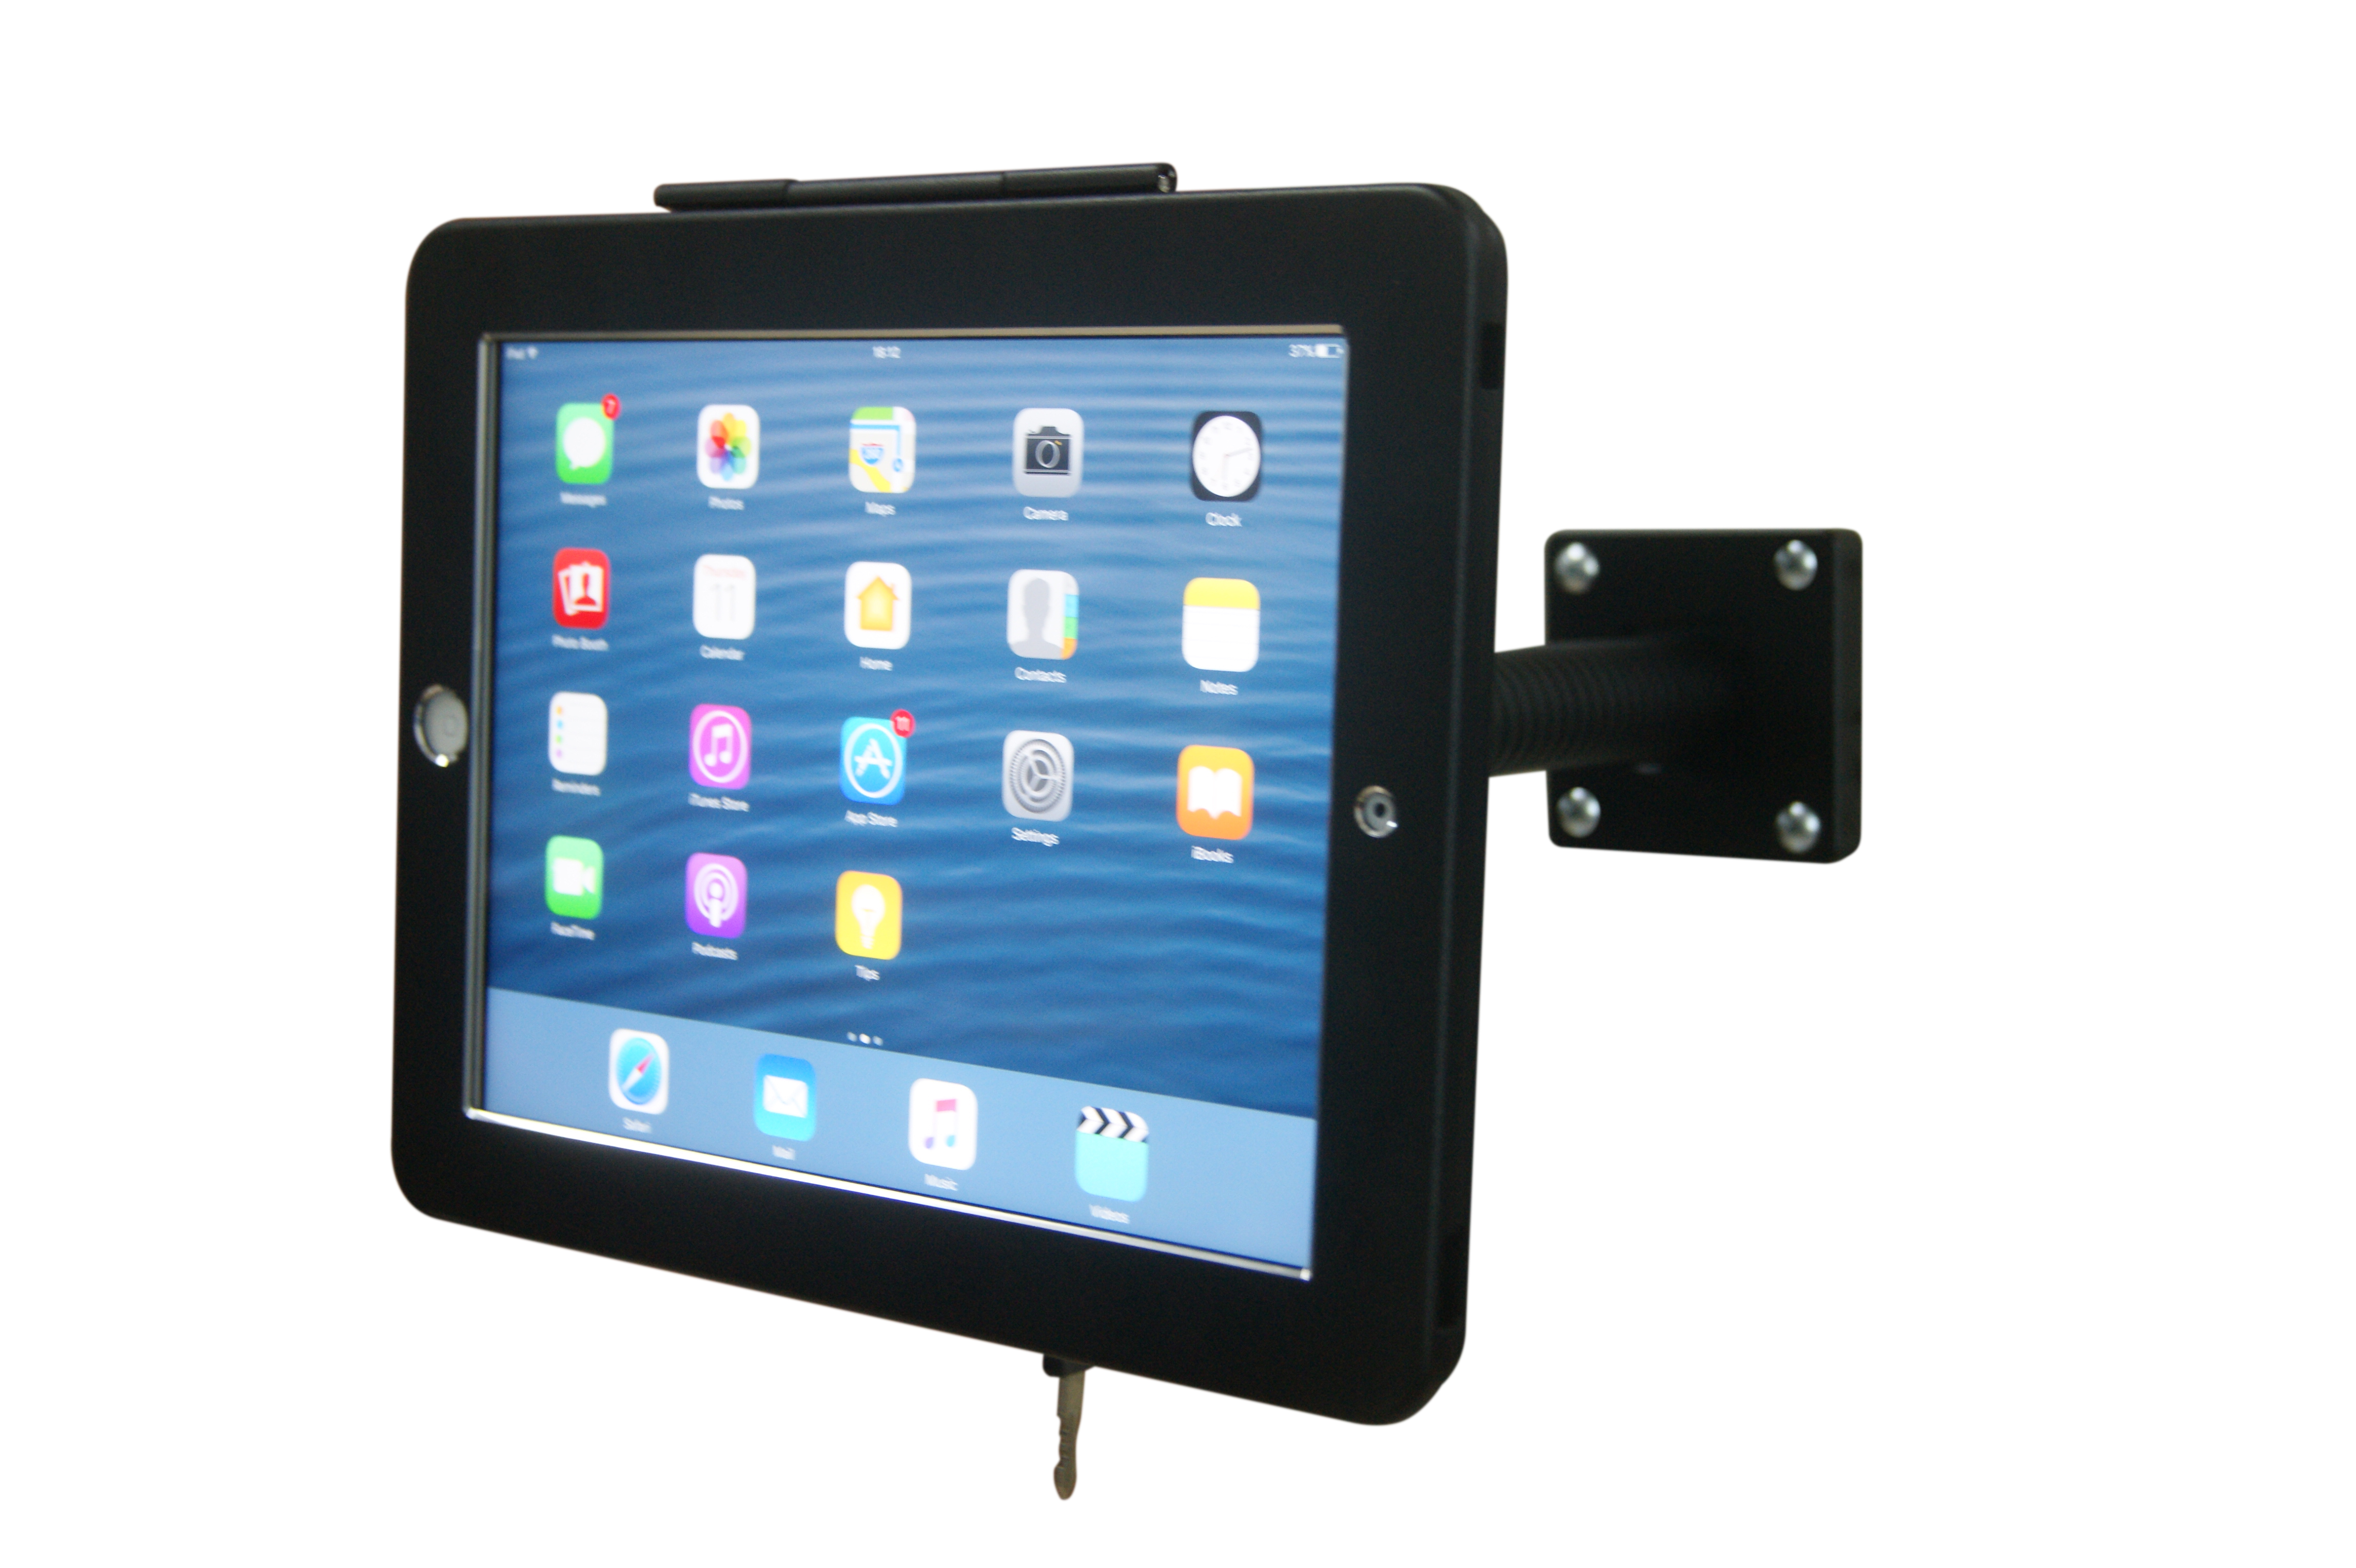 Avr24007 Ipad Table Stand Wall Mount Screw In Type